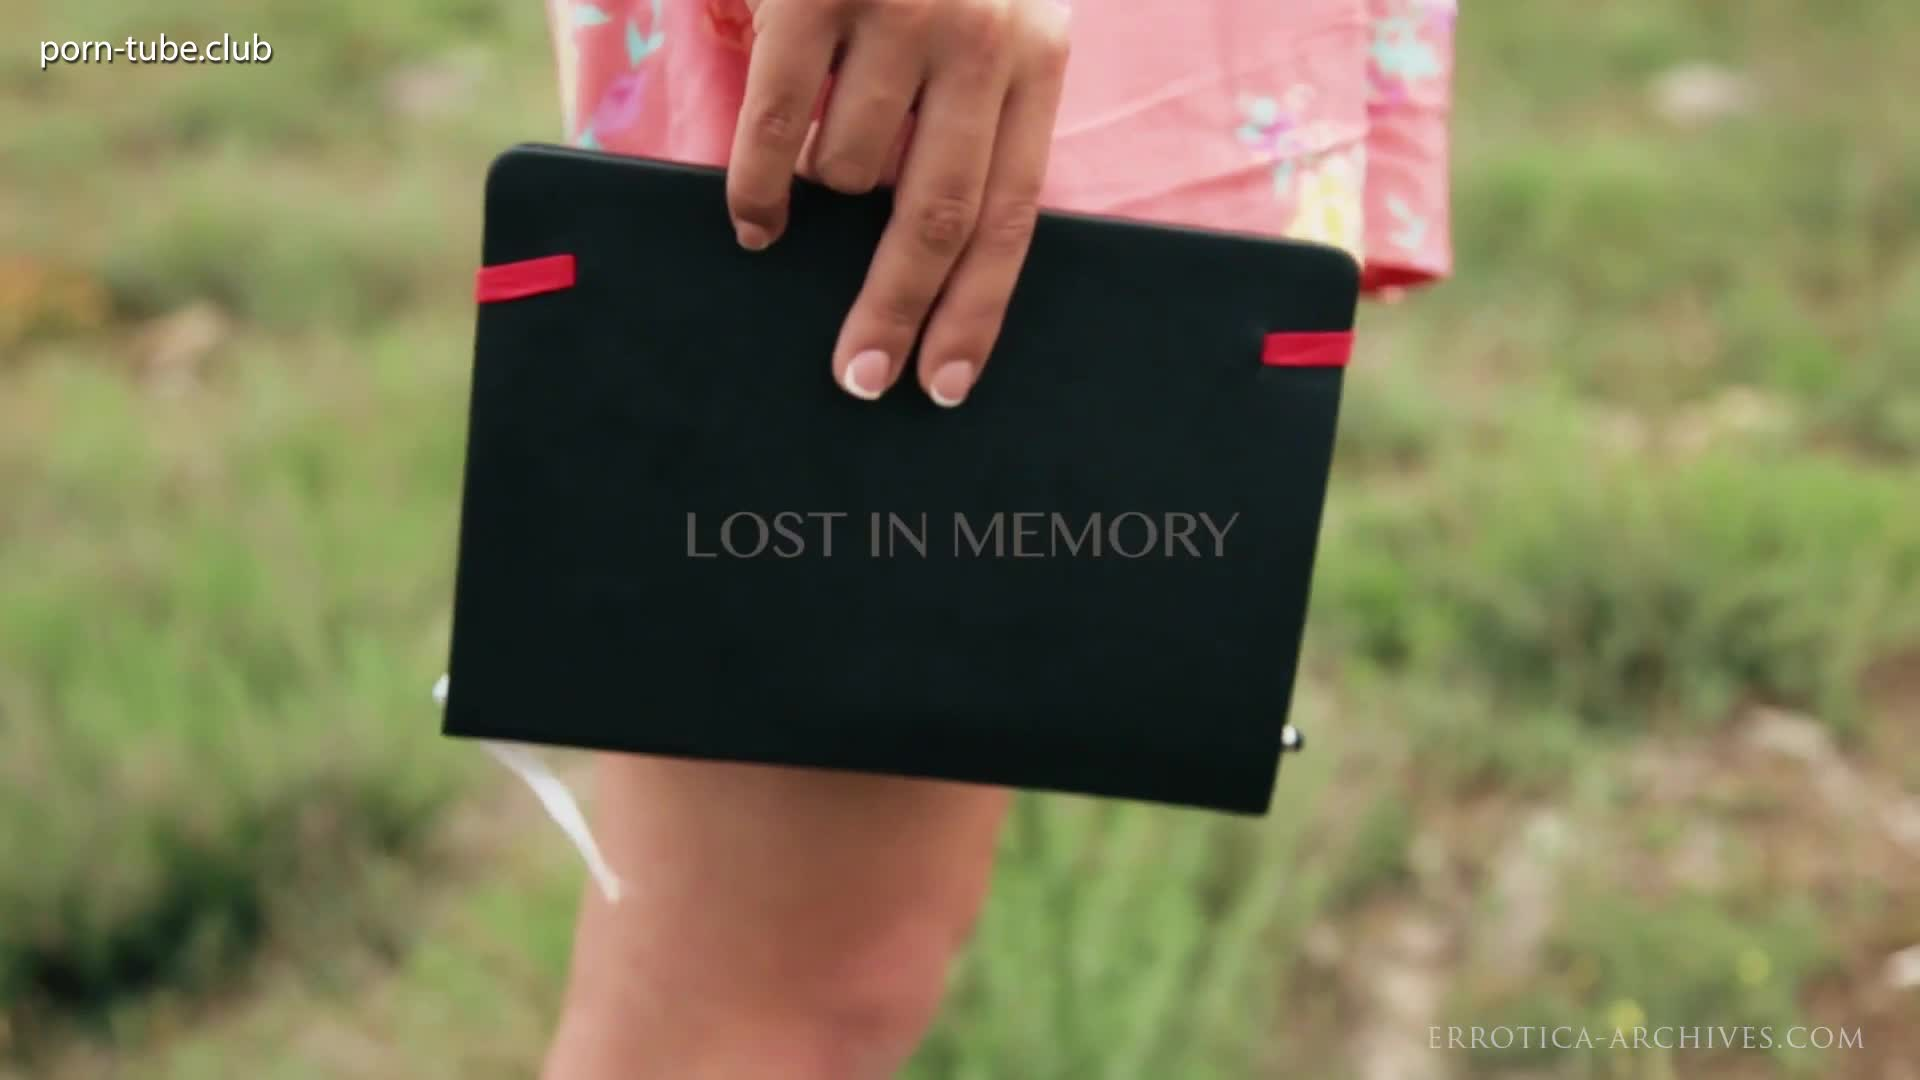 Errotica-Archives 16.10.23 Emmy Lost In Memory